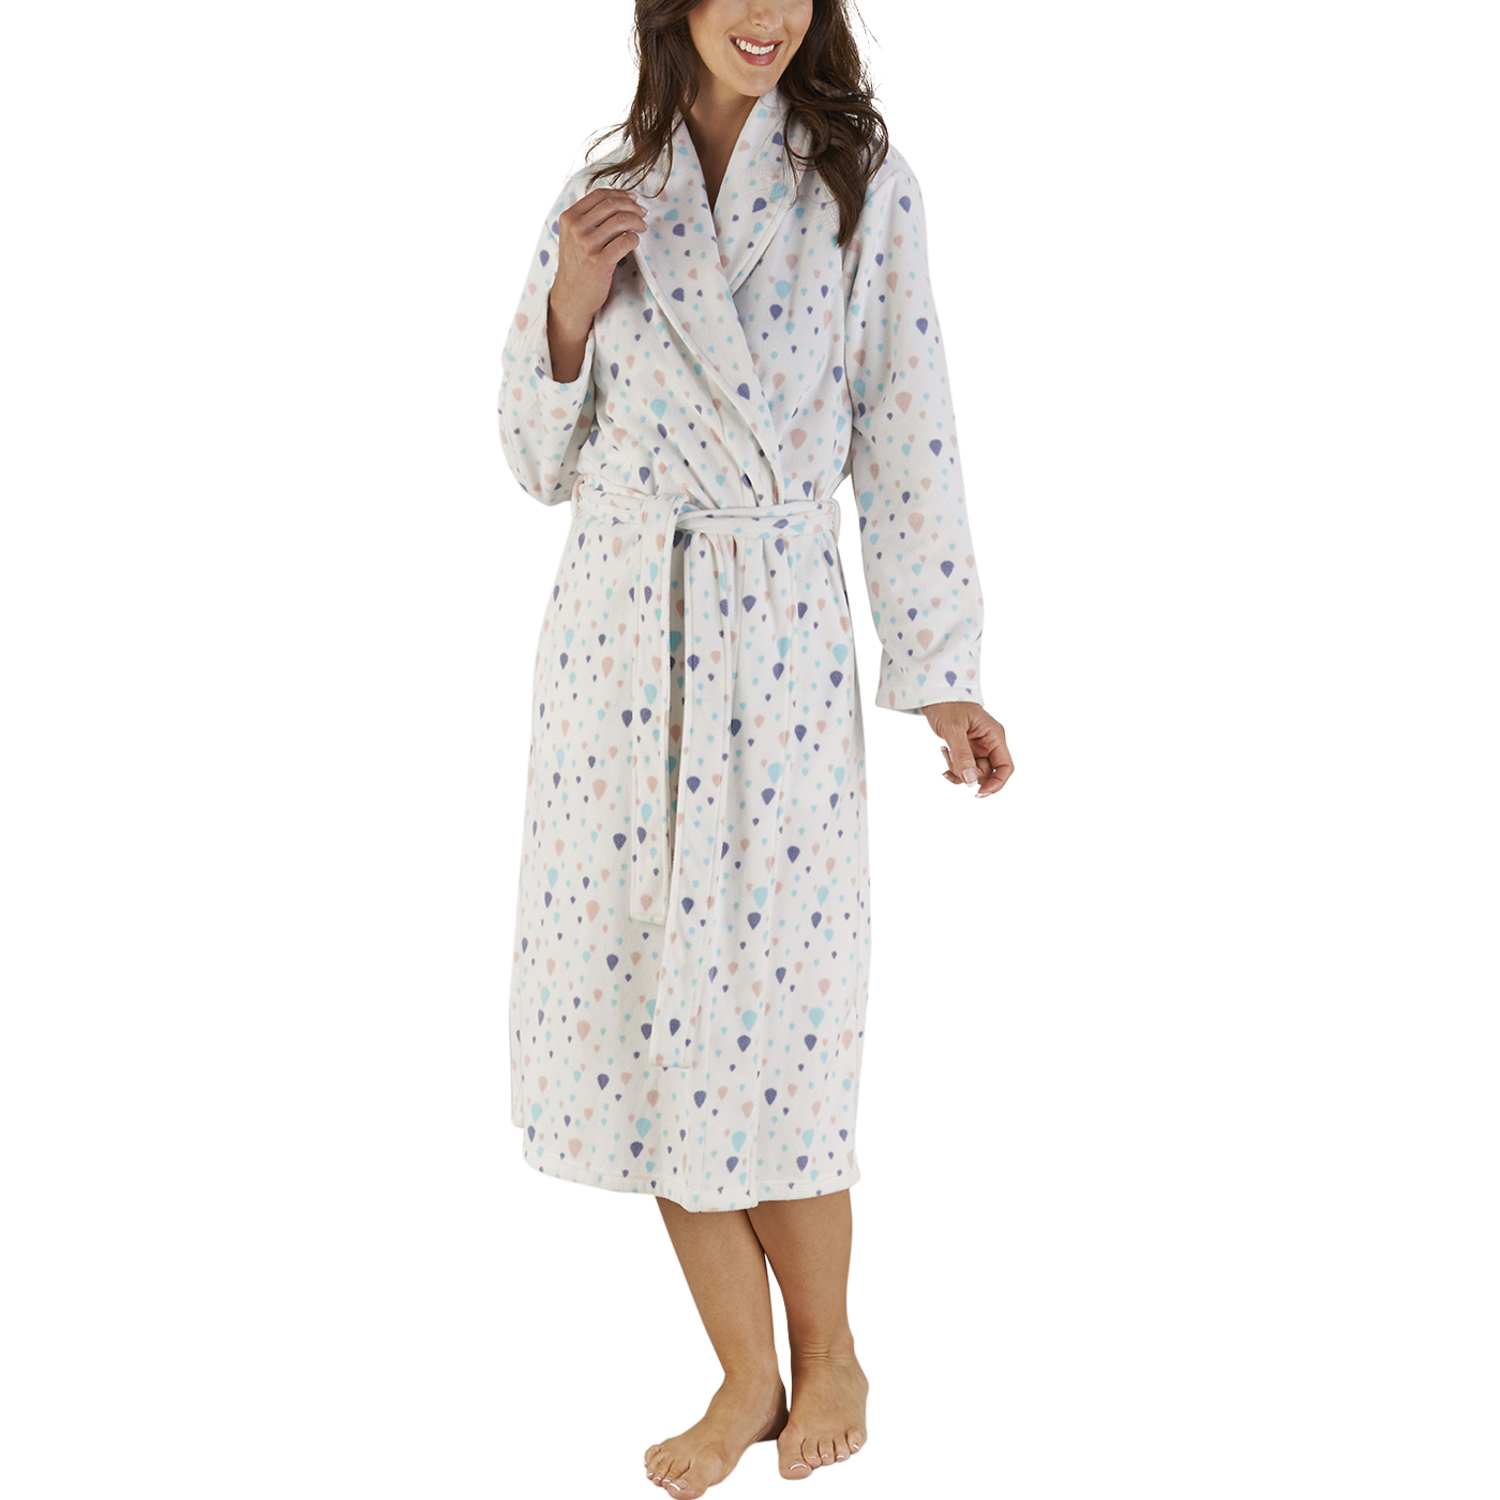 8e666e5561 These luxurious ladies soft micro fleece dressing gowns have a fun balloon  print throughout and would be perfect for keeping you warm during the  colder ...